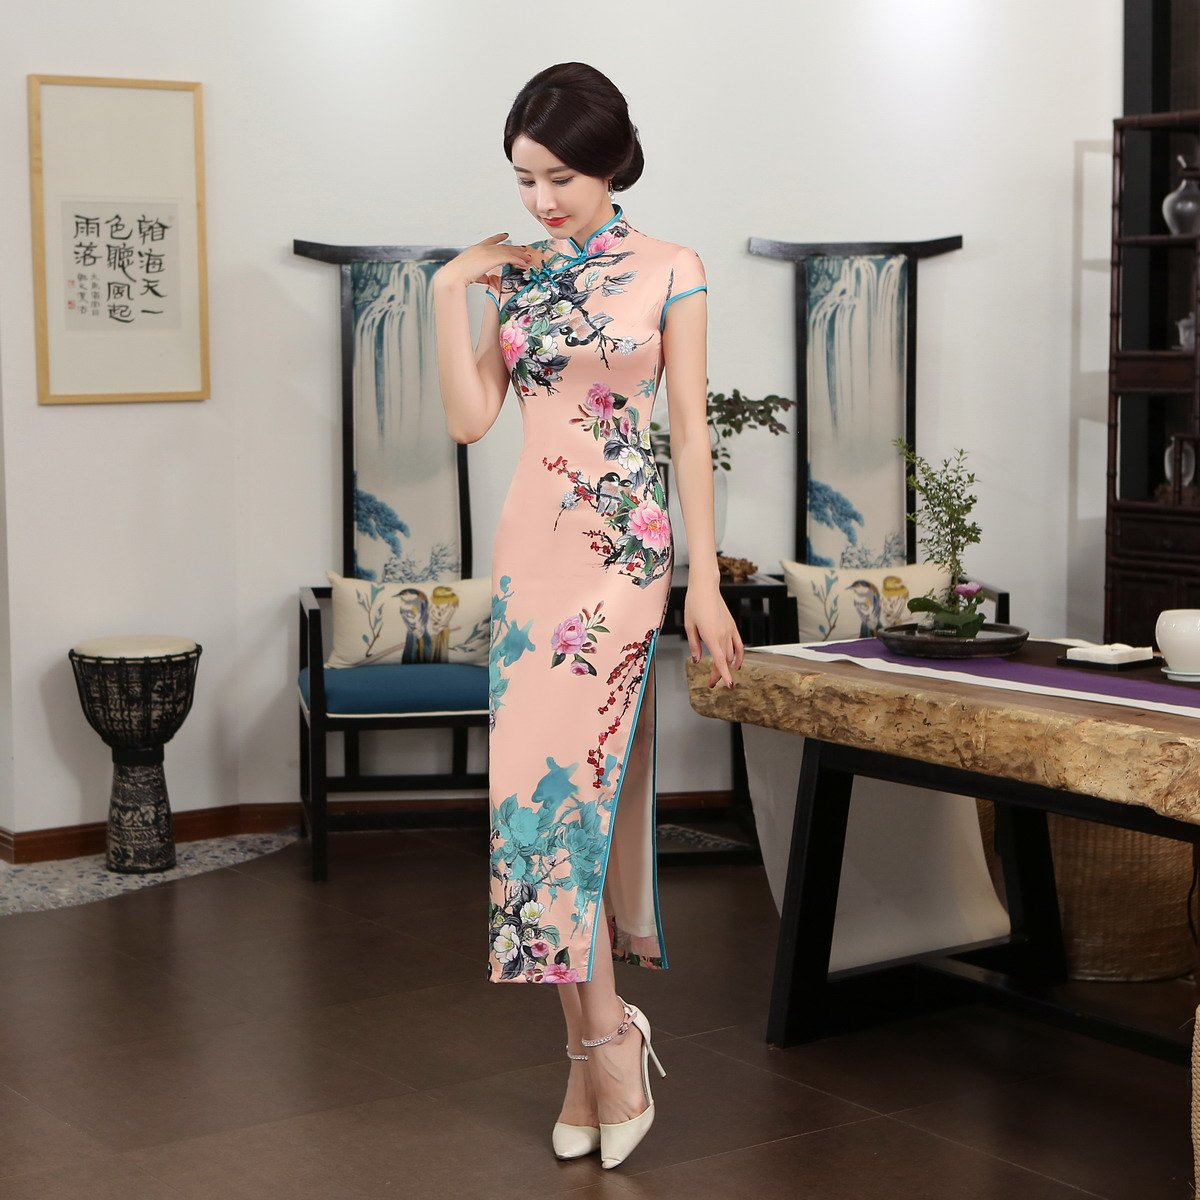 ACVIP Women Stand Collar Cap Sleeve Retro Chinese Floral Maxi Qipao Cheongsam (China 3XL/Bust:40.9'') by ACVIP (Image #7)